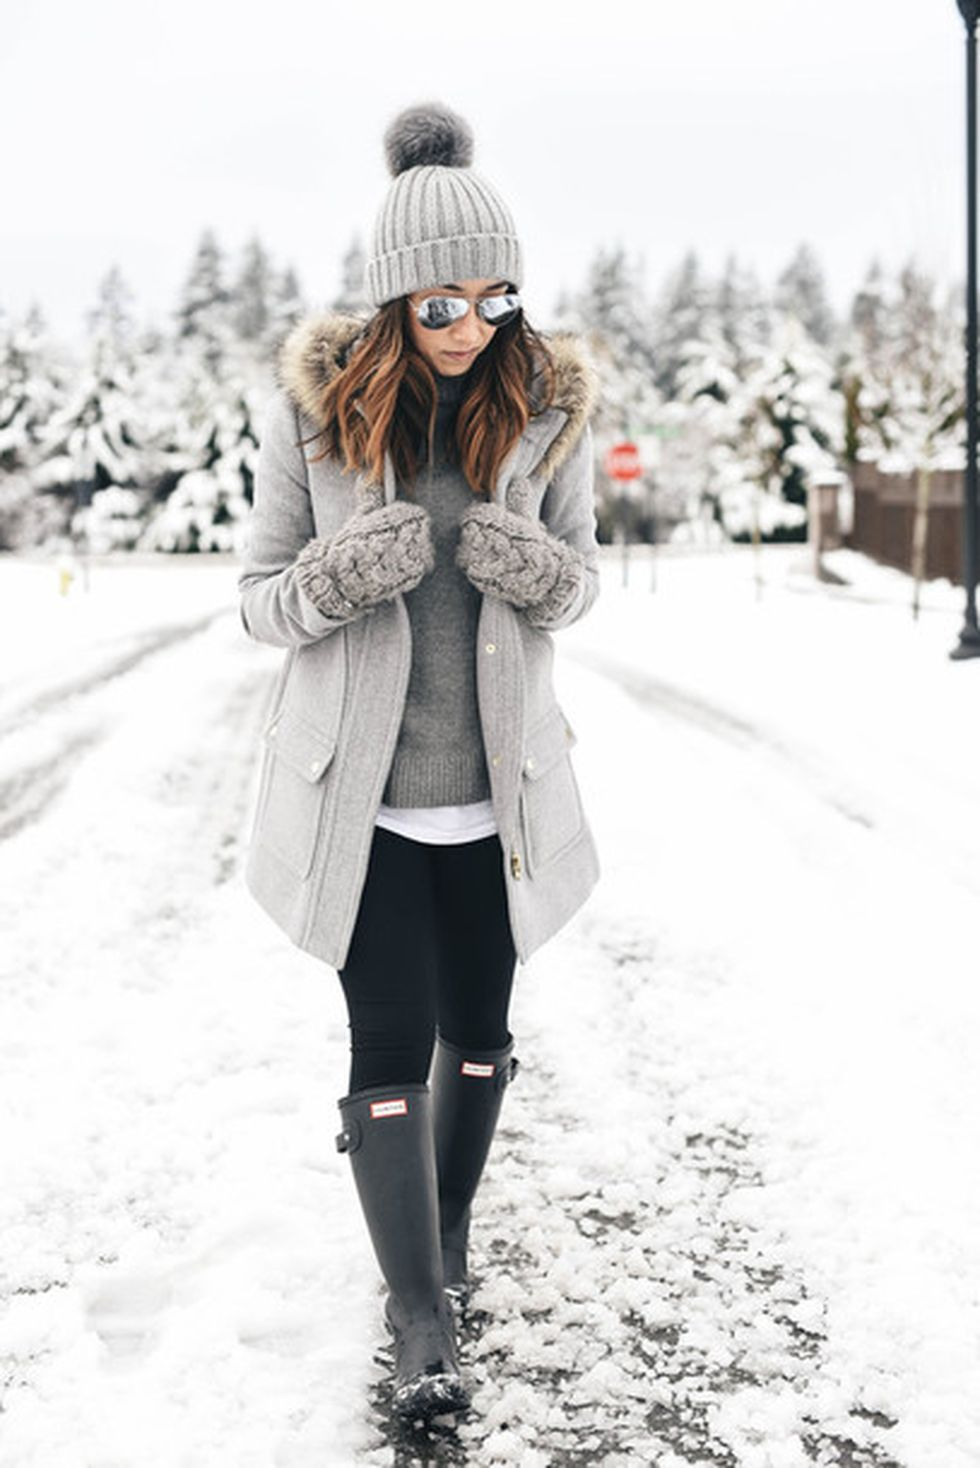 Fashionable women hats for winter and snow outfits 40